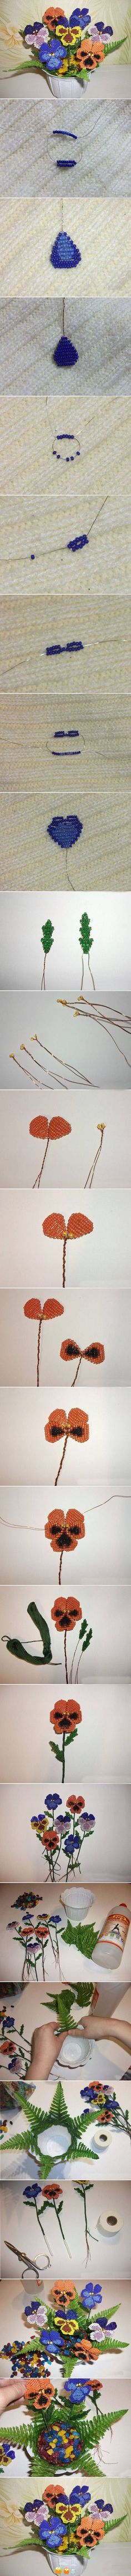 How to make Beads Pansy Flower step by step DIY instructions / How To Instructio. Handmade Flowers, Diy Flowers, Crochet Flowers, Flower Diy, Seed Bead Flowers, French Beaded Flowers, Beaded Crafts, Beaded Ornaments, Beading Tutorials